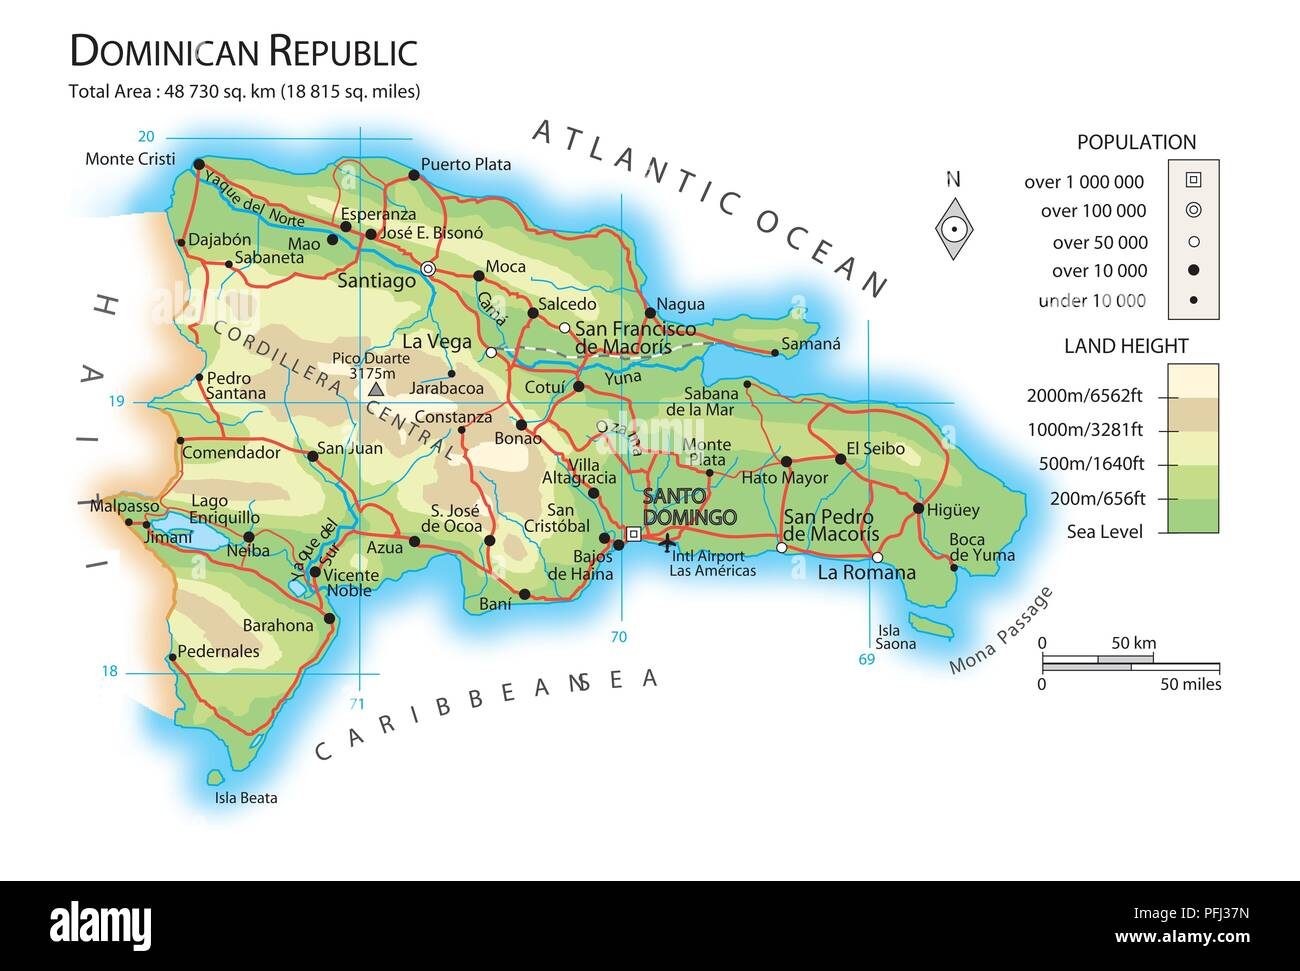 Map of Dominican Republic Stock Photo: 216141961 - Alamy